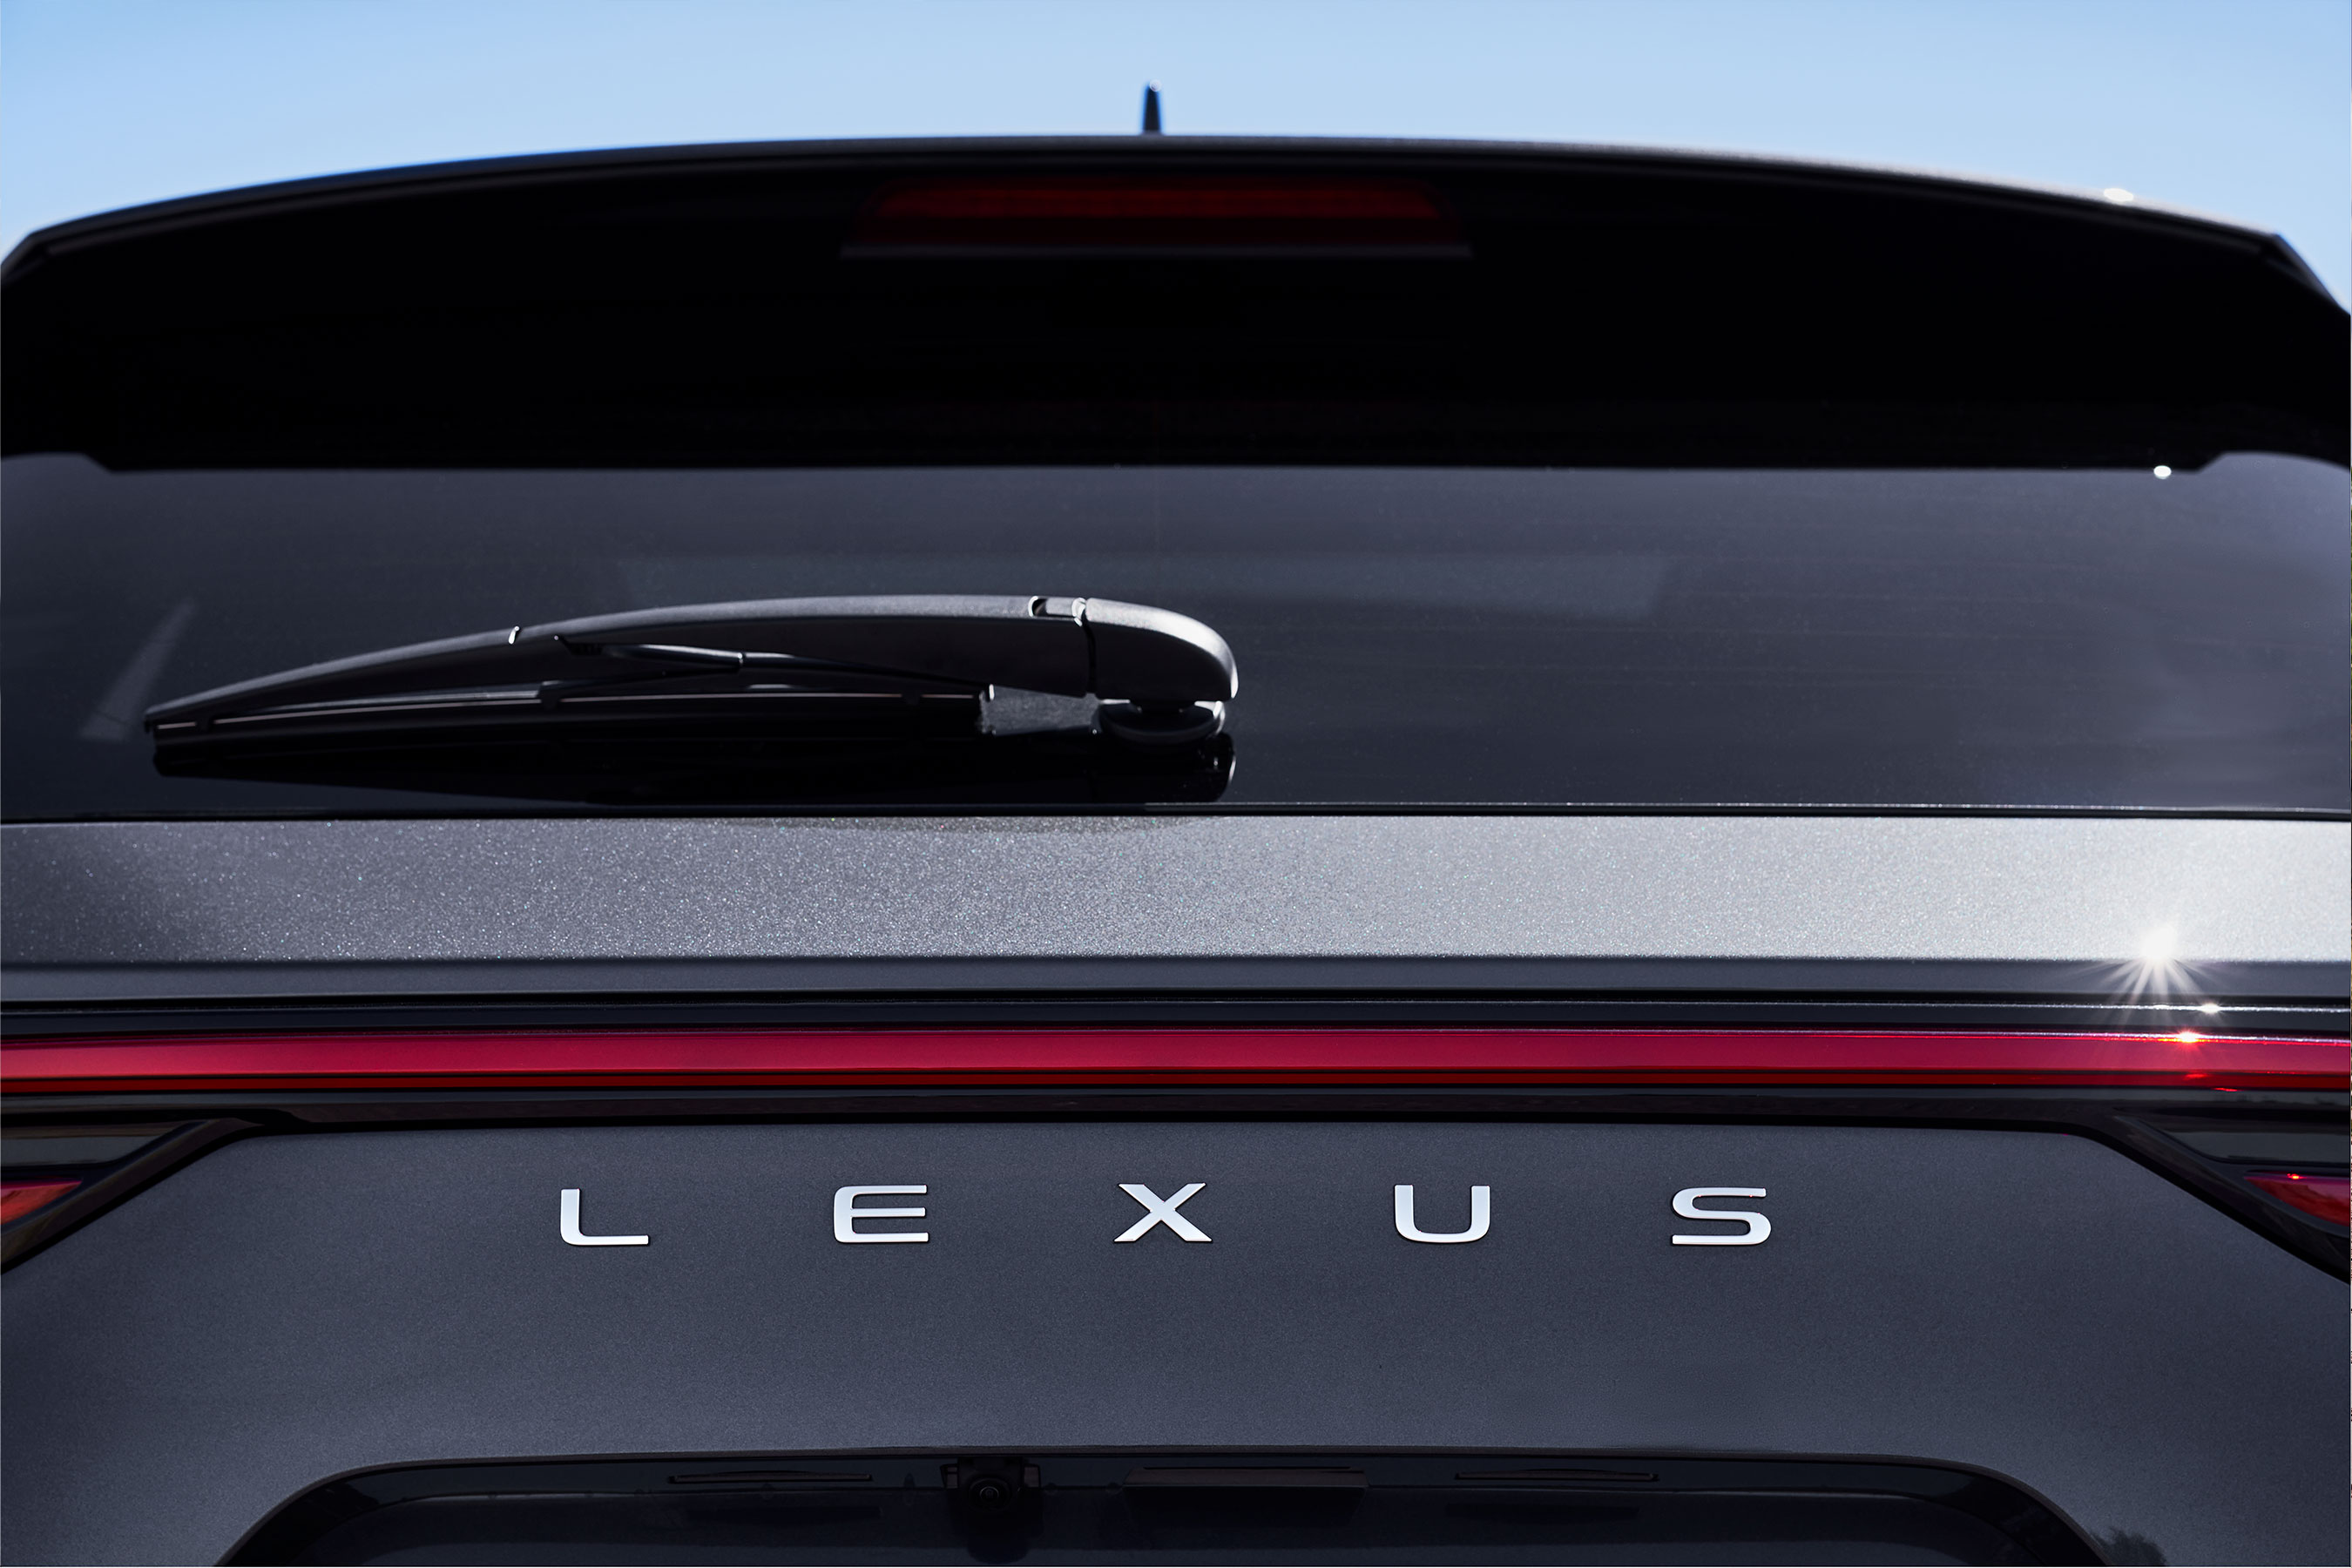 As a brand first, the Lexus NX will feature the new, unified LEXUS logo located on the back of the vehicle in the center.